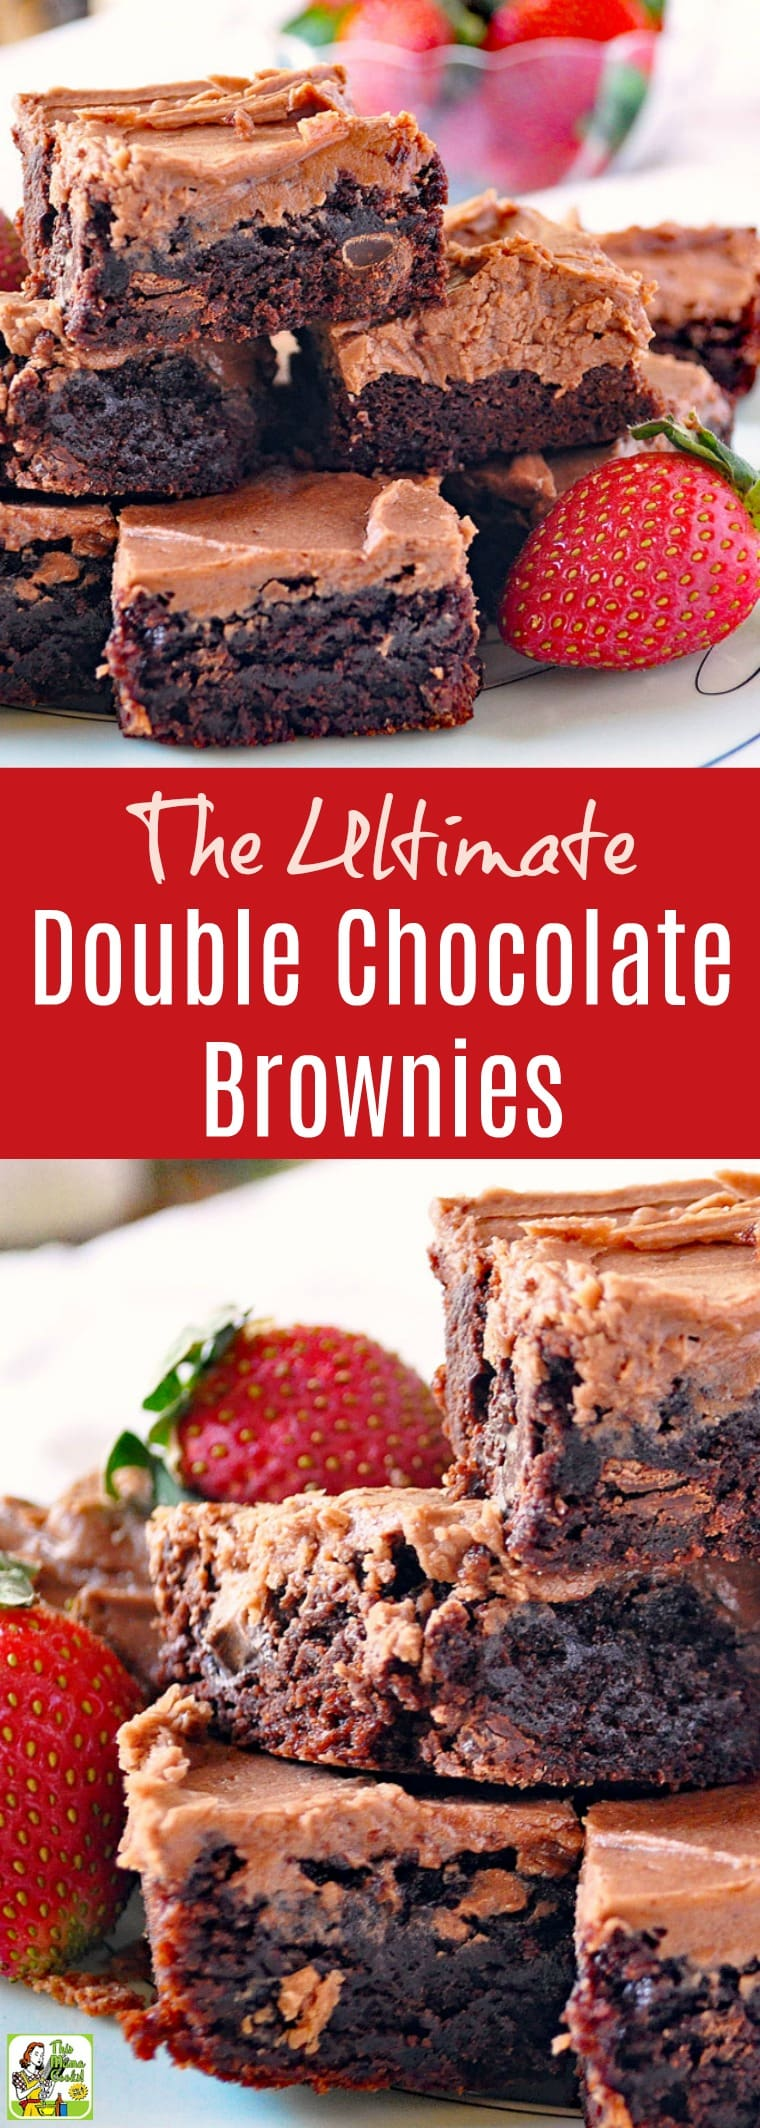 The Ultimate Double Chocolate Brownies Recipe. Make these easy chocolate brownies recipe with your kids! Comes with tips for making this chocolate dessert recipe gluten free, dairy free, and nut free. #recipes #easy #recipeoftheday #glutenfree #easyrecipe #easyrecipes #glutenfreerecipes #snacks #desserts #dessertrecipes #dessertideas #baking #chocolate #brownies #kids #kidfriendly #dairyfree #nutfree #chocolate